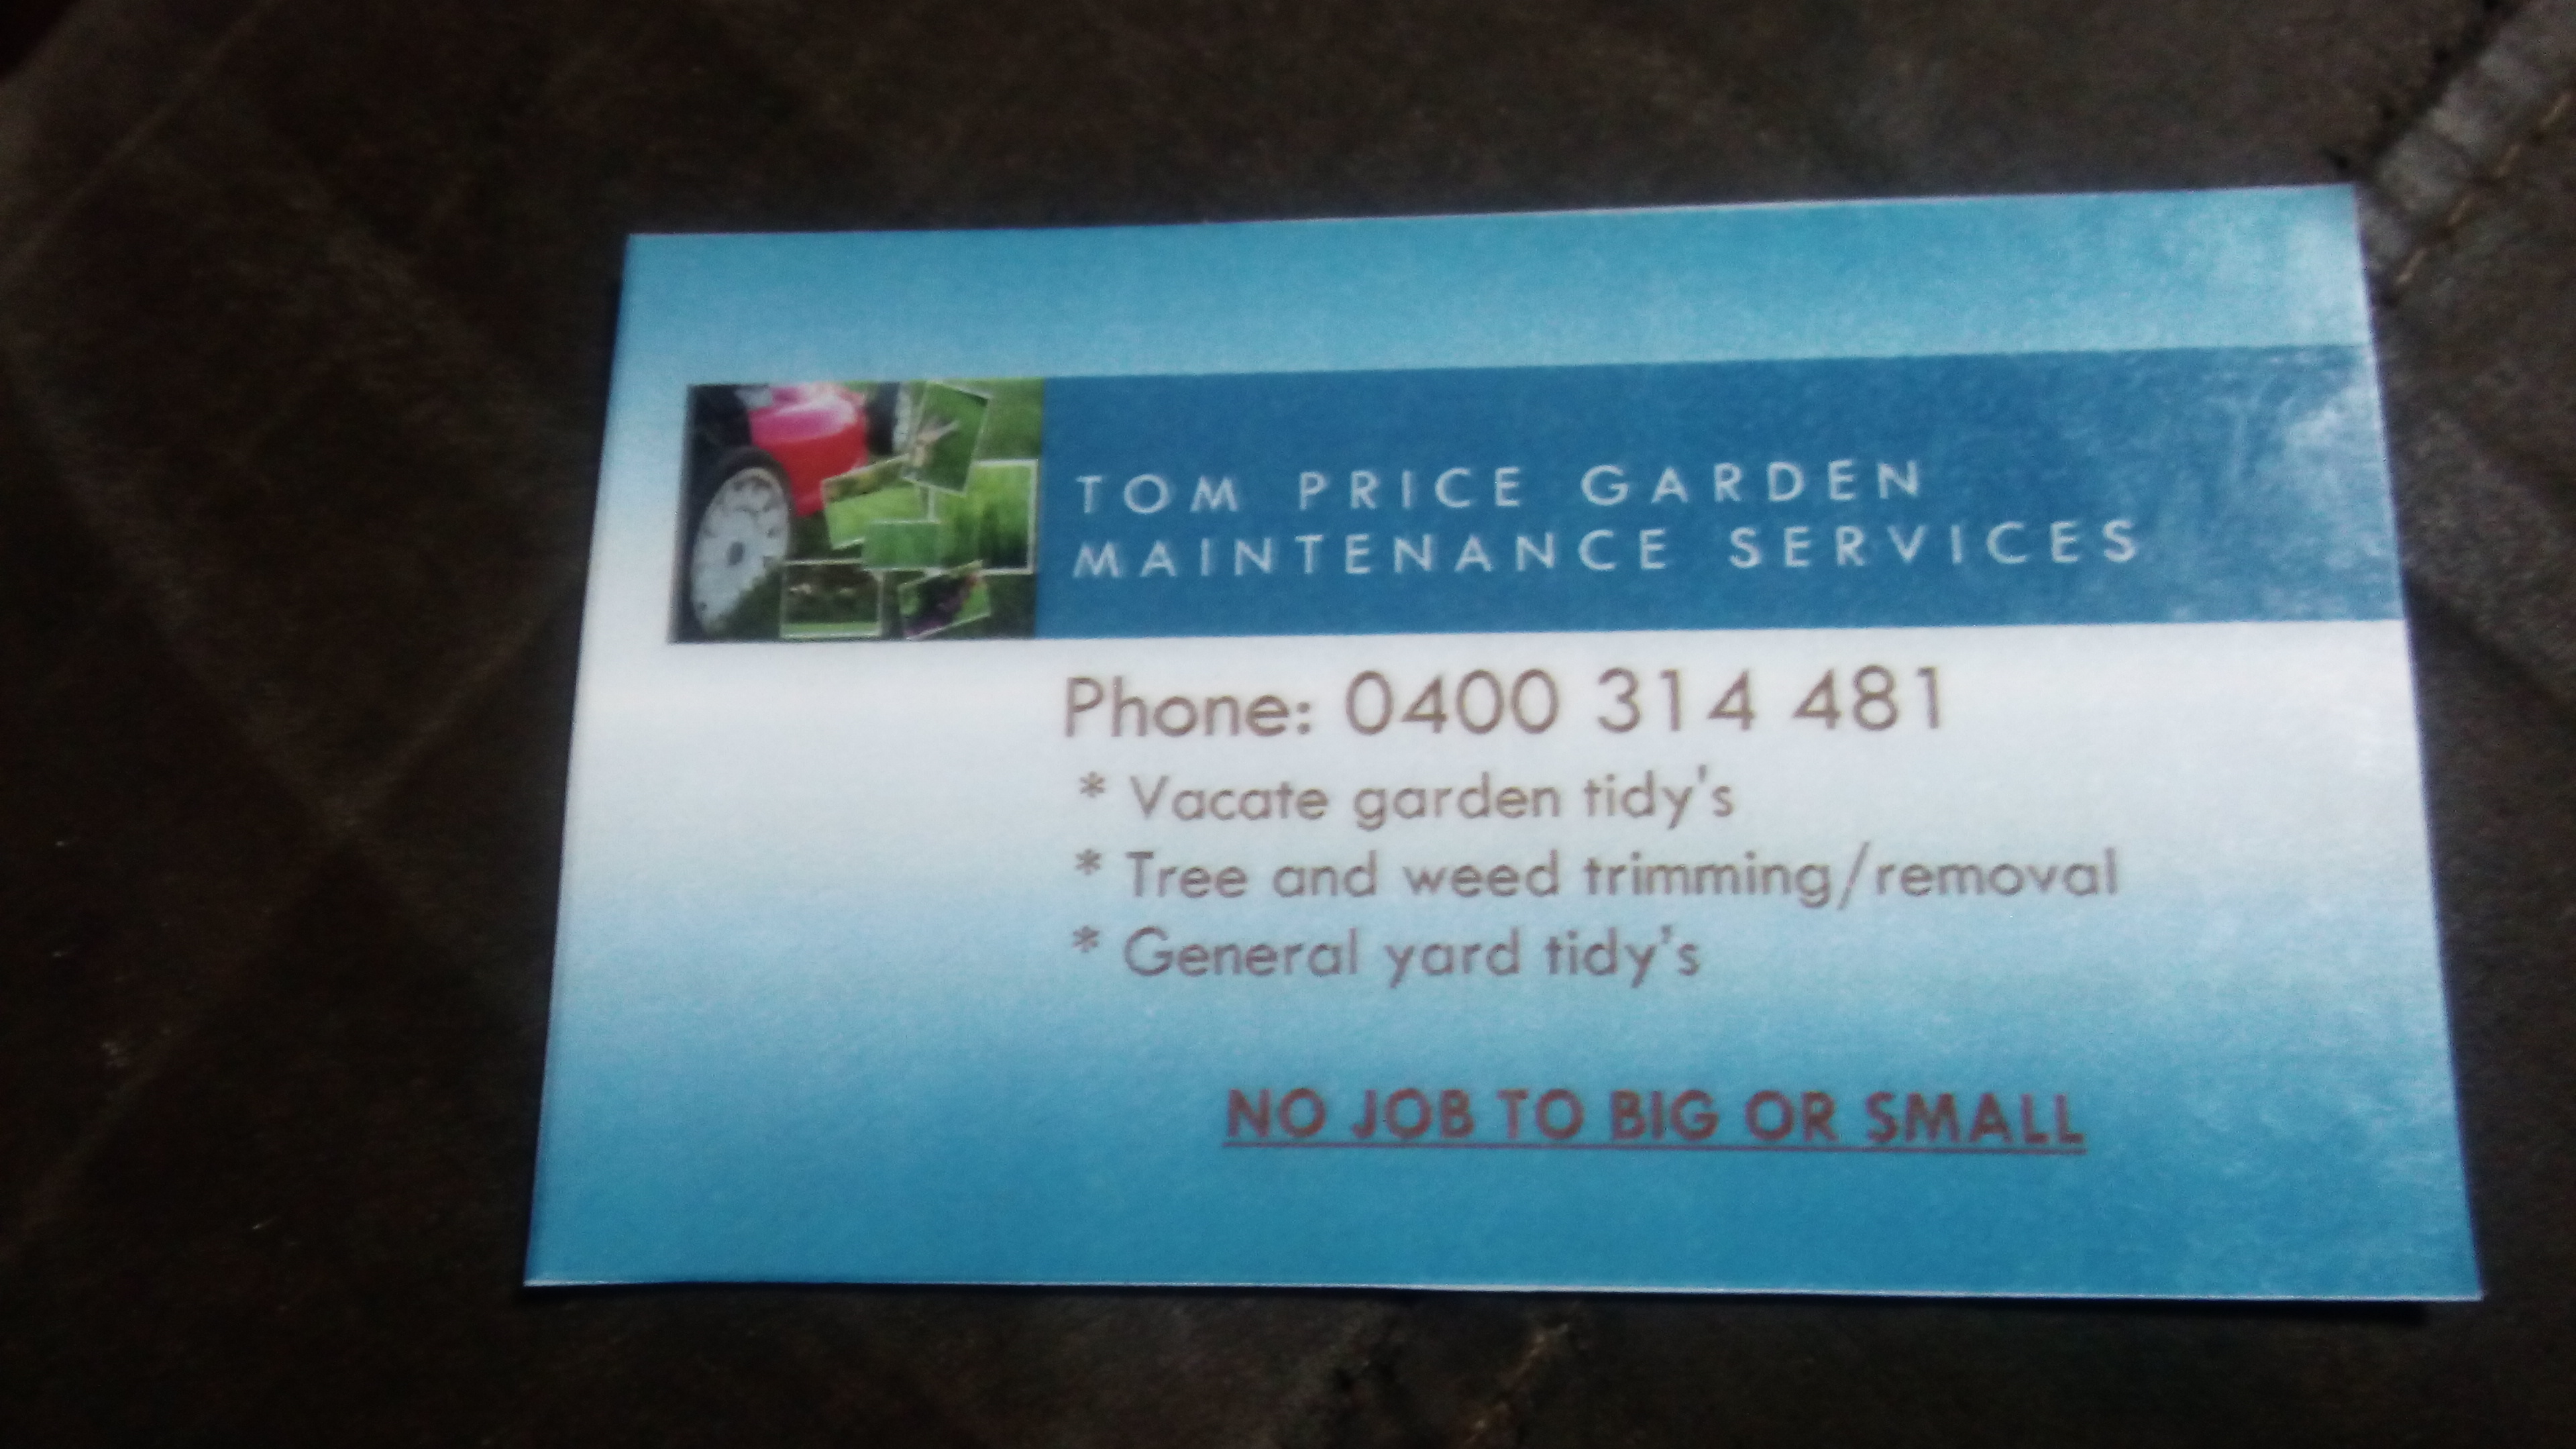 Tom Price Garden and Maintenance Service